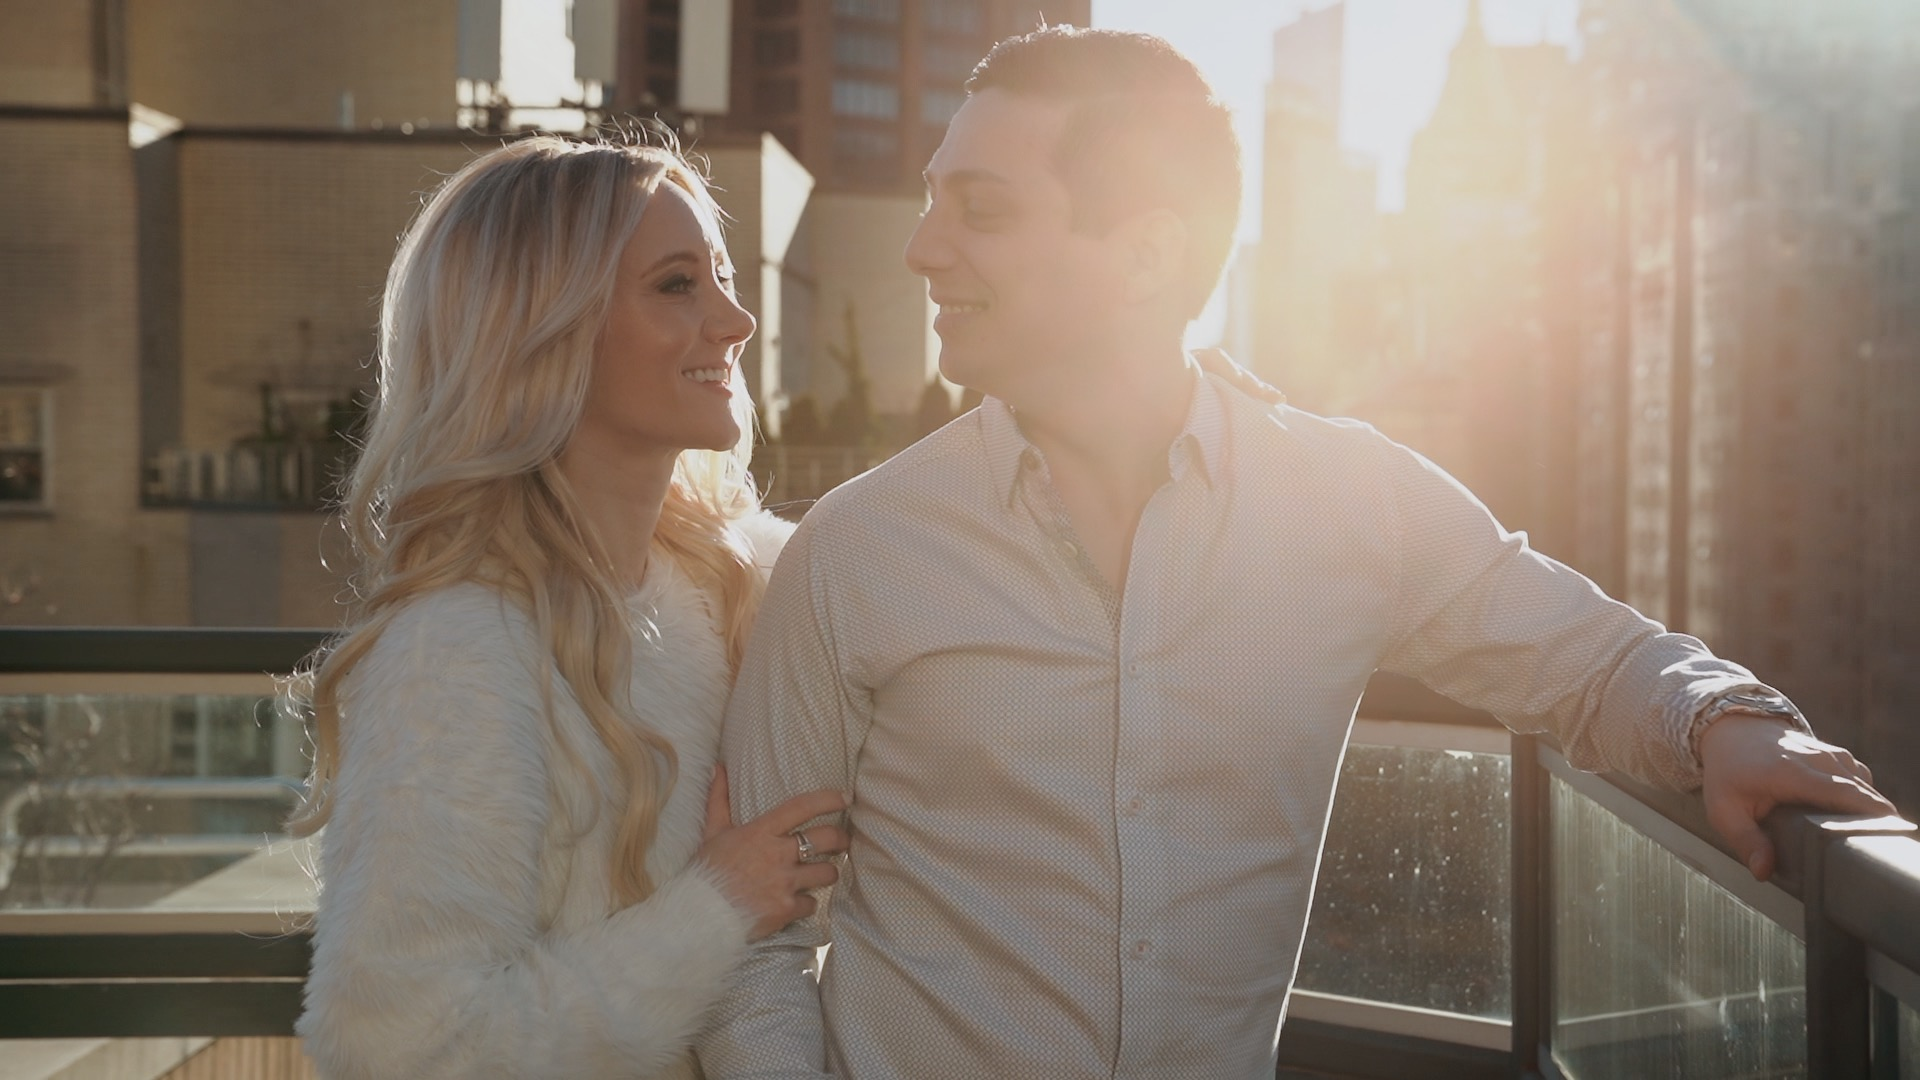 Zach + Susie | New York, New York | The Rainbow Room